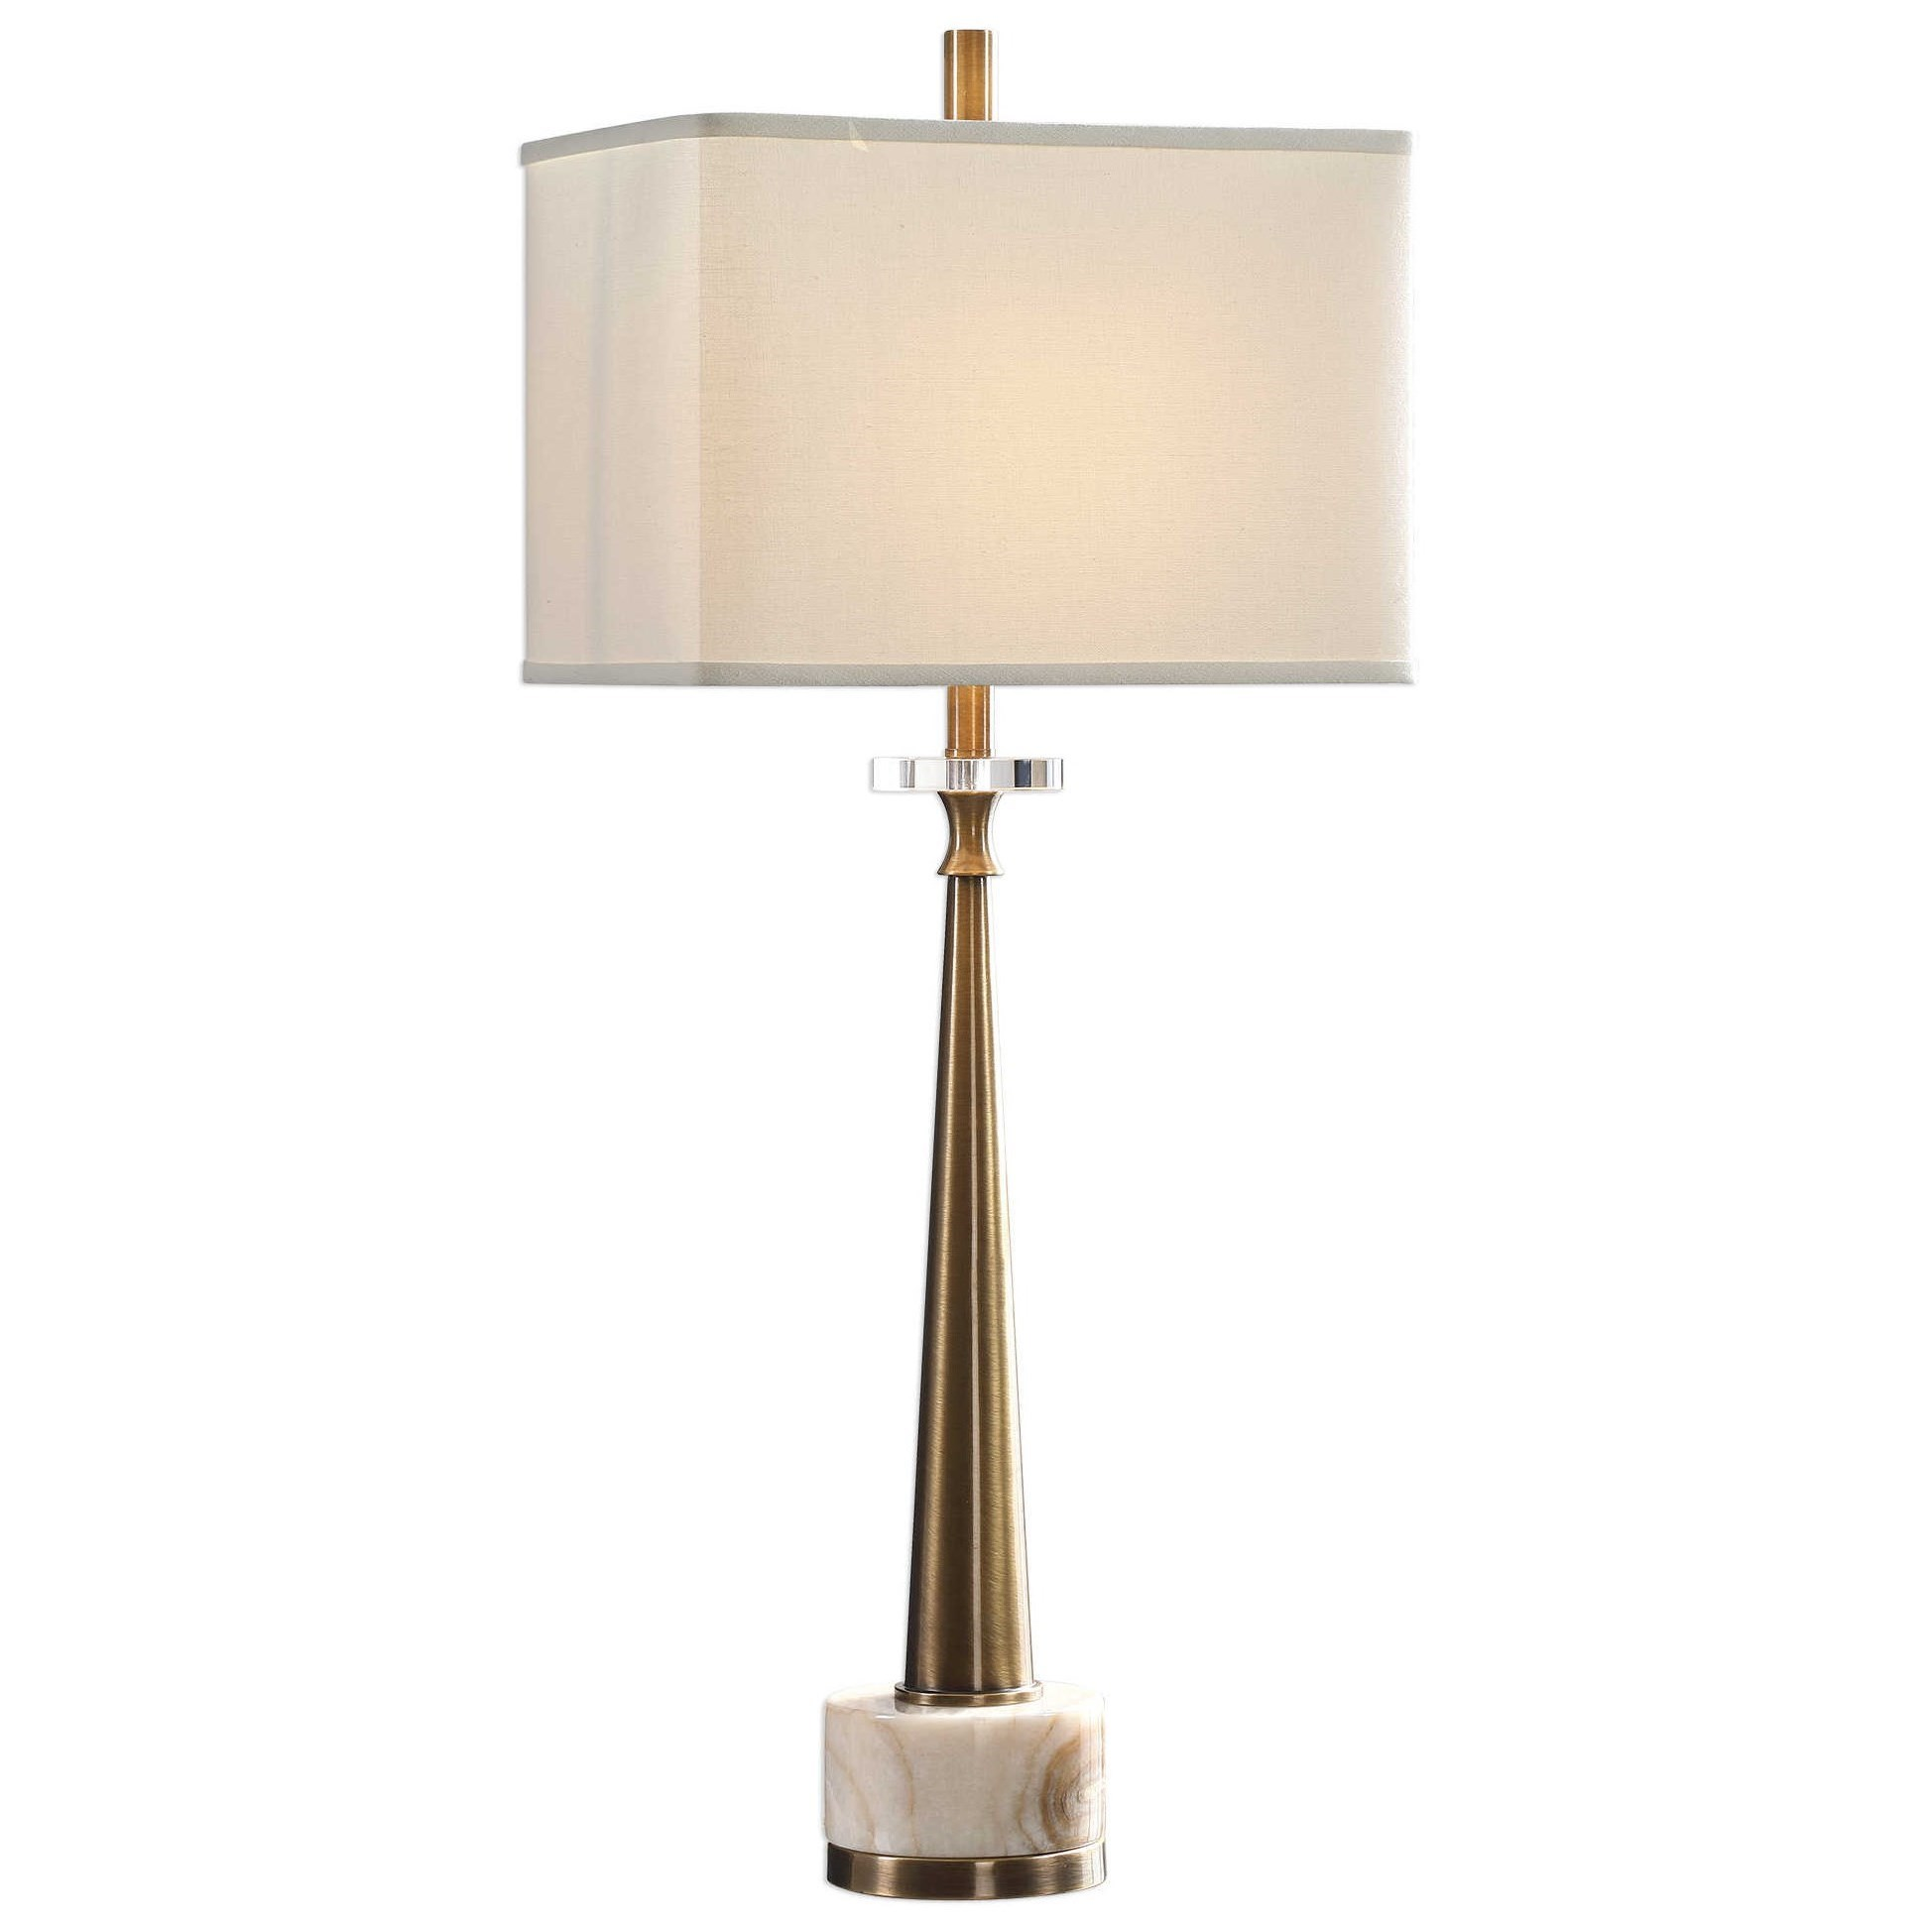 Uttermost Buffet Lamps 29616 1 Verner Tapered Brass Table Lamp O Dunk O Bright Furniture Table Lamps